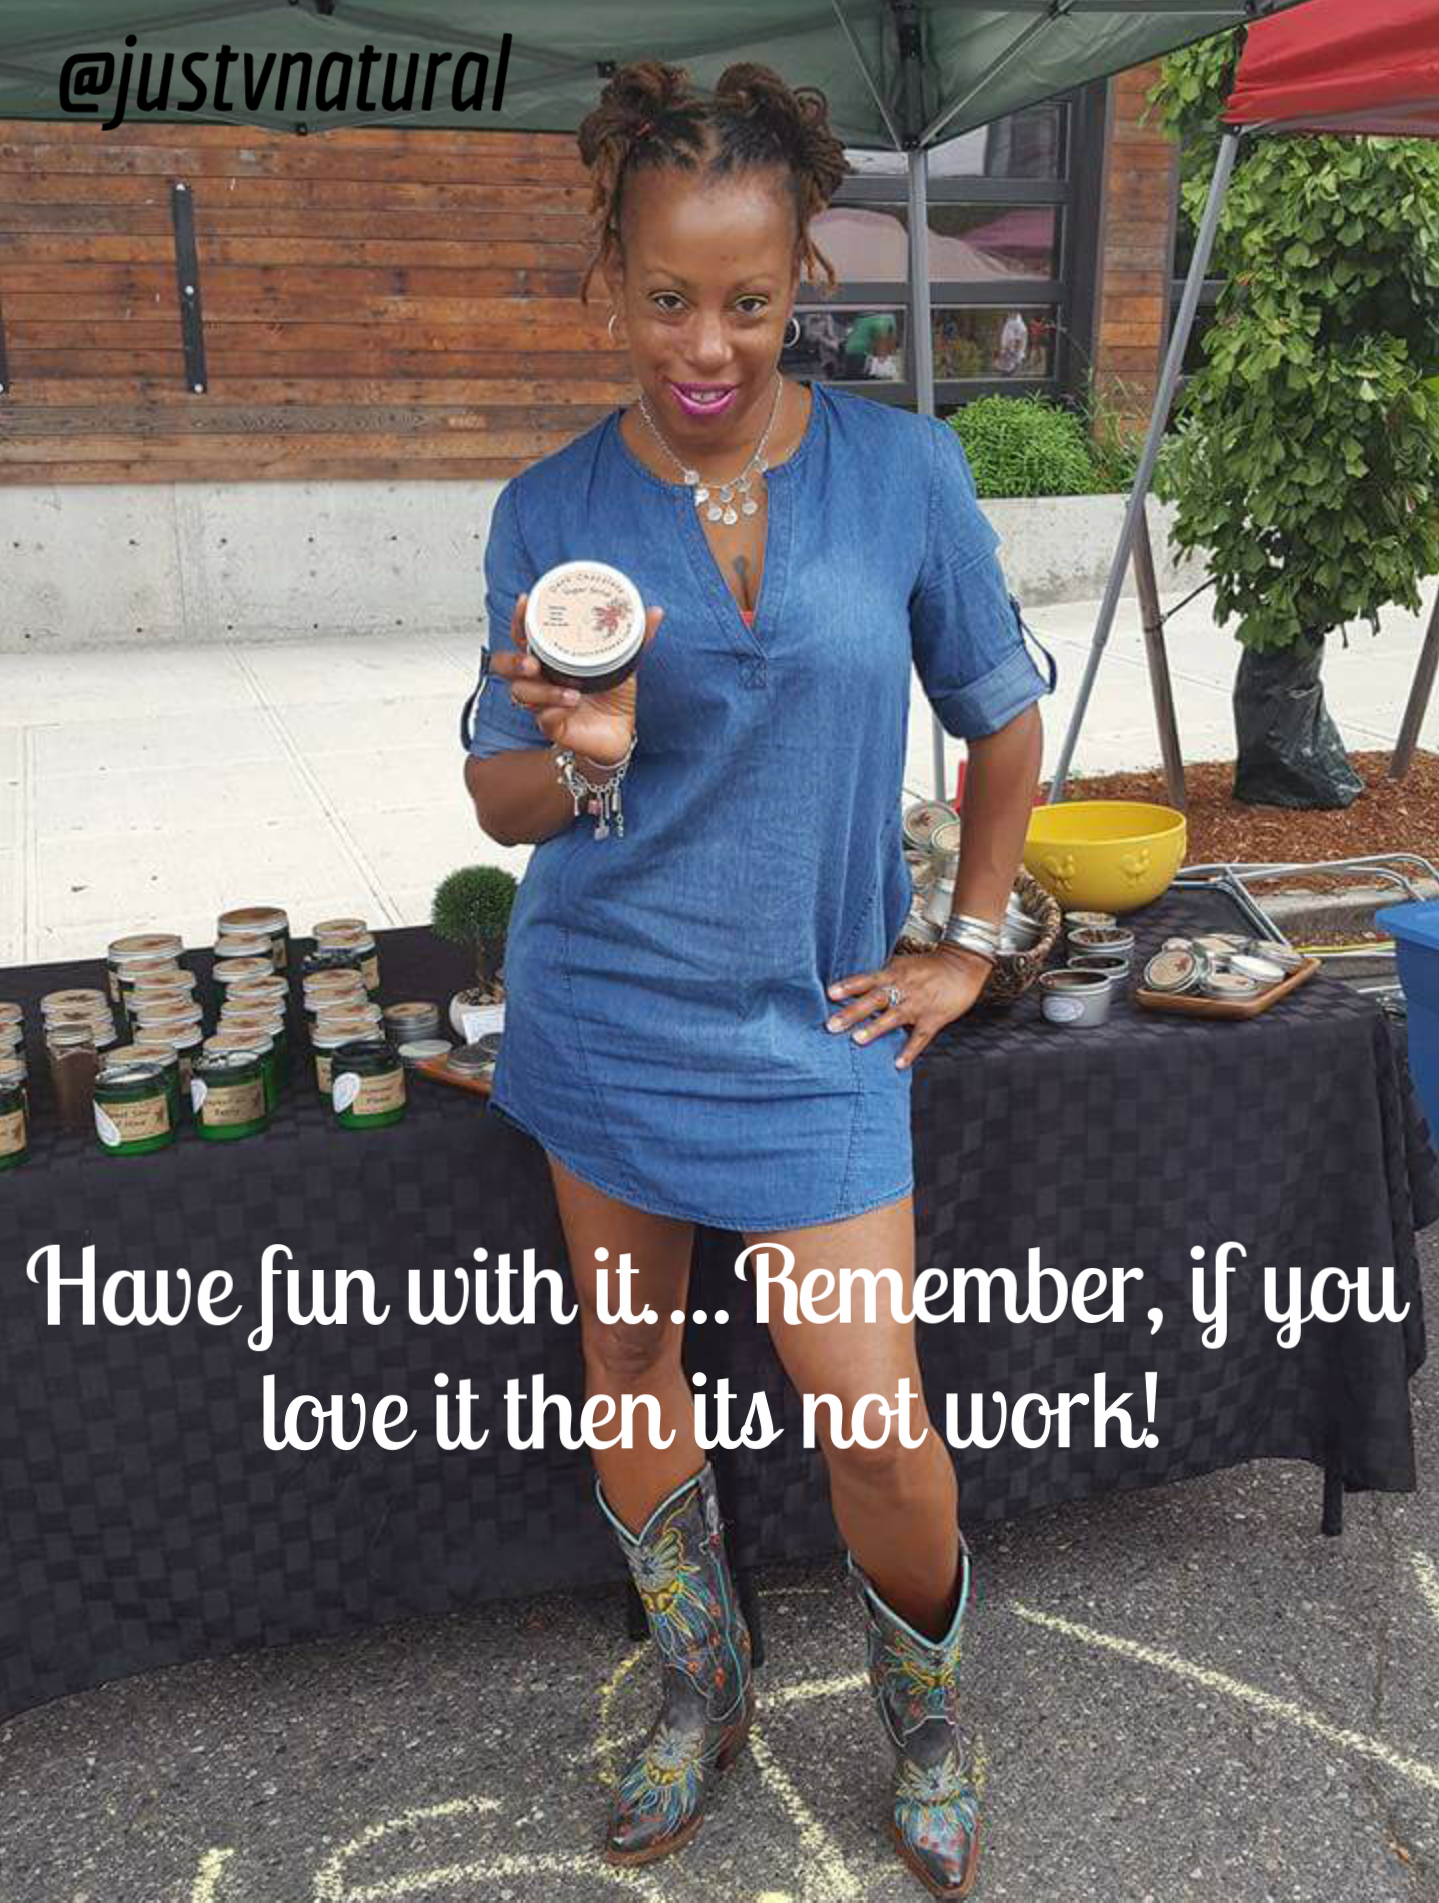 Have fun with it.....remember, if you love it then it's not work!